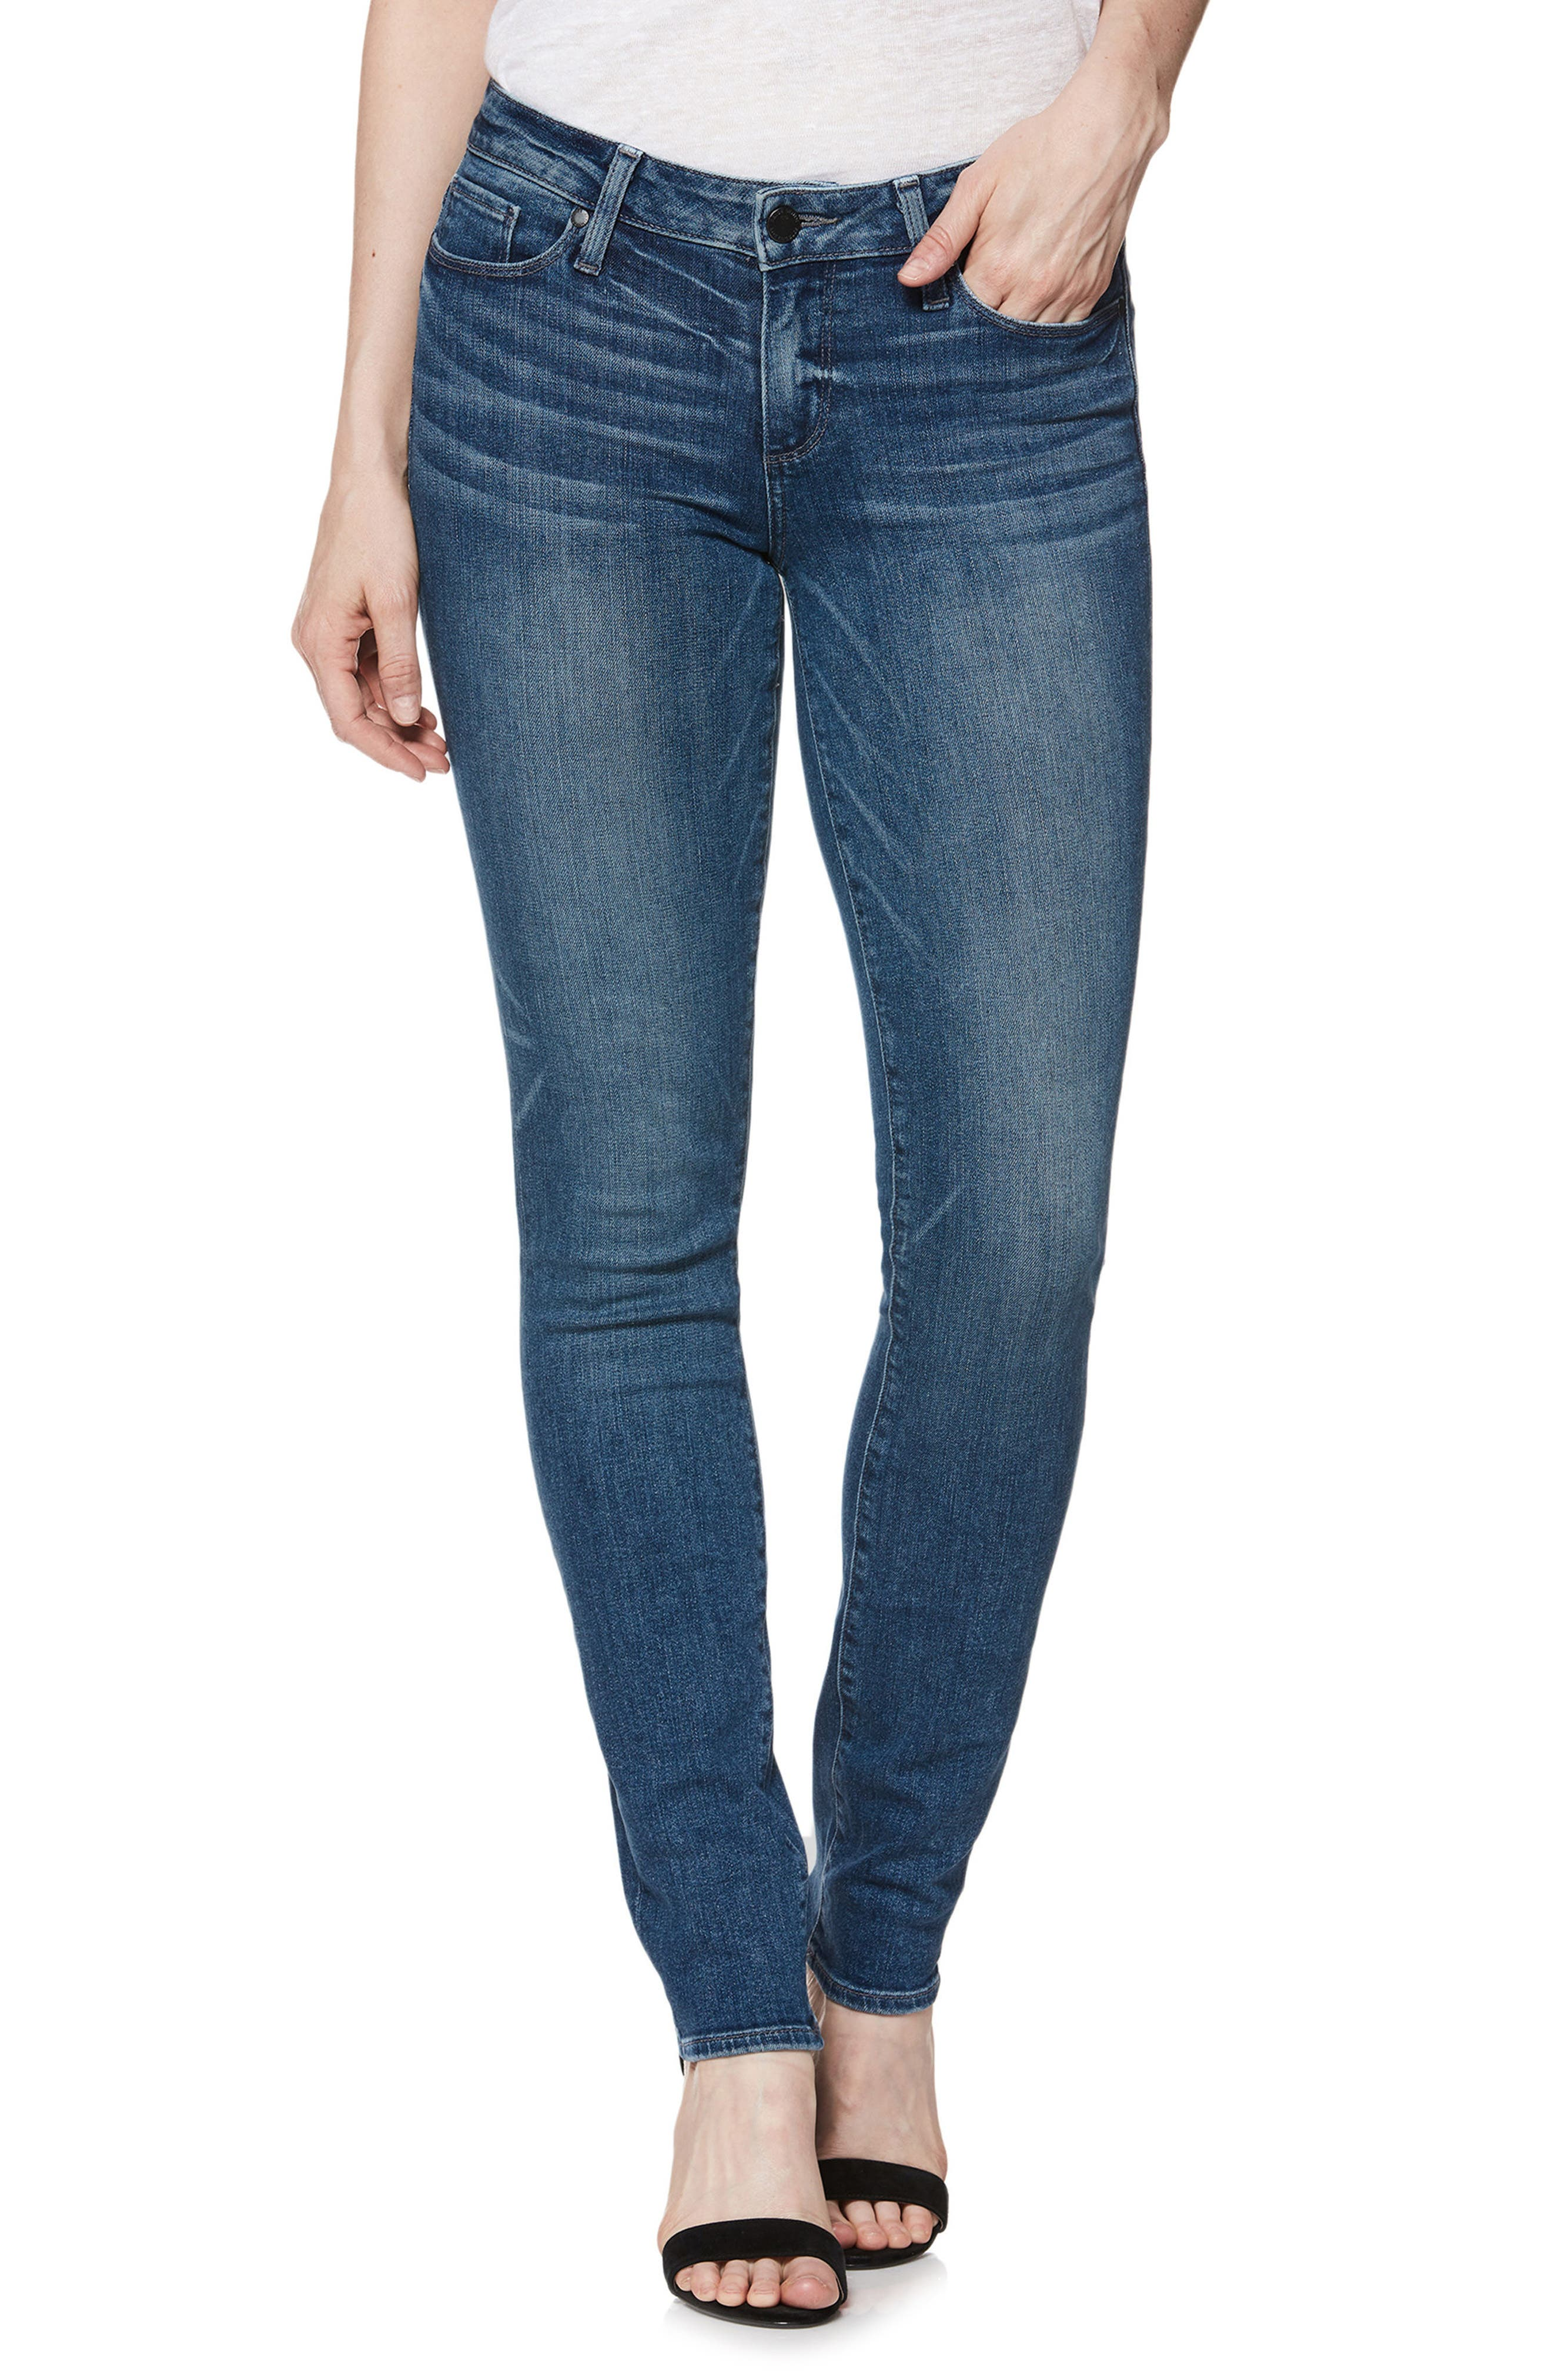 Transcend Vintage - Skyline Skinny Jeans,                         Main,                         color, 400